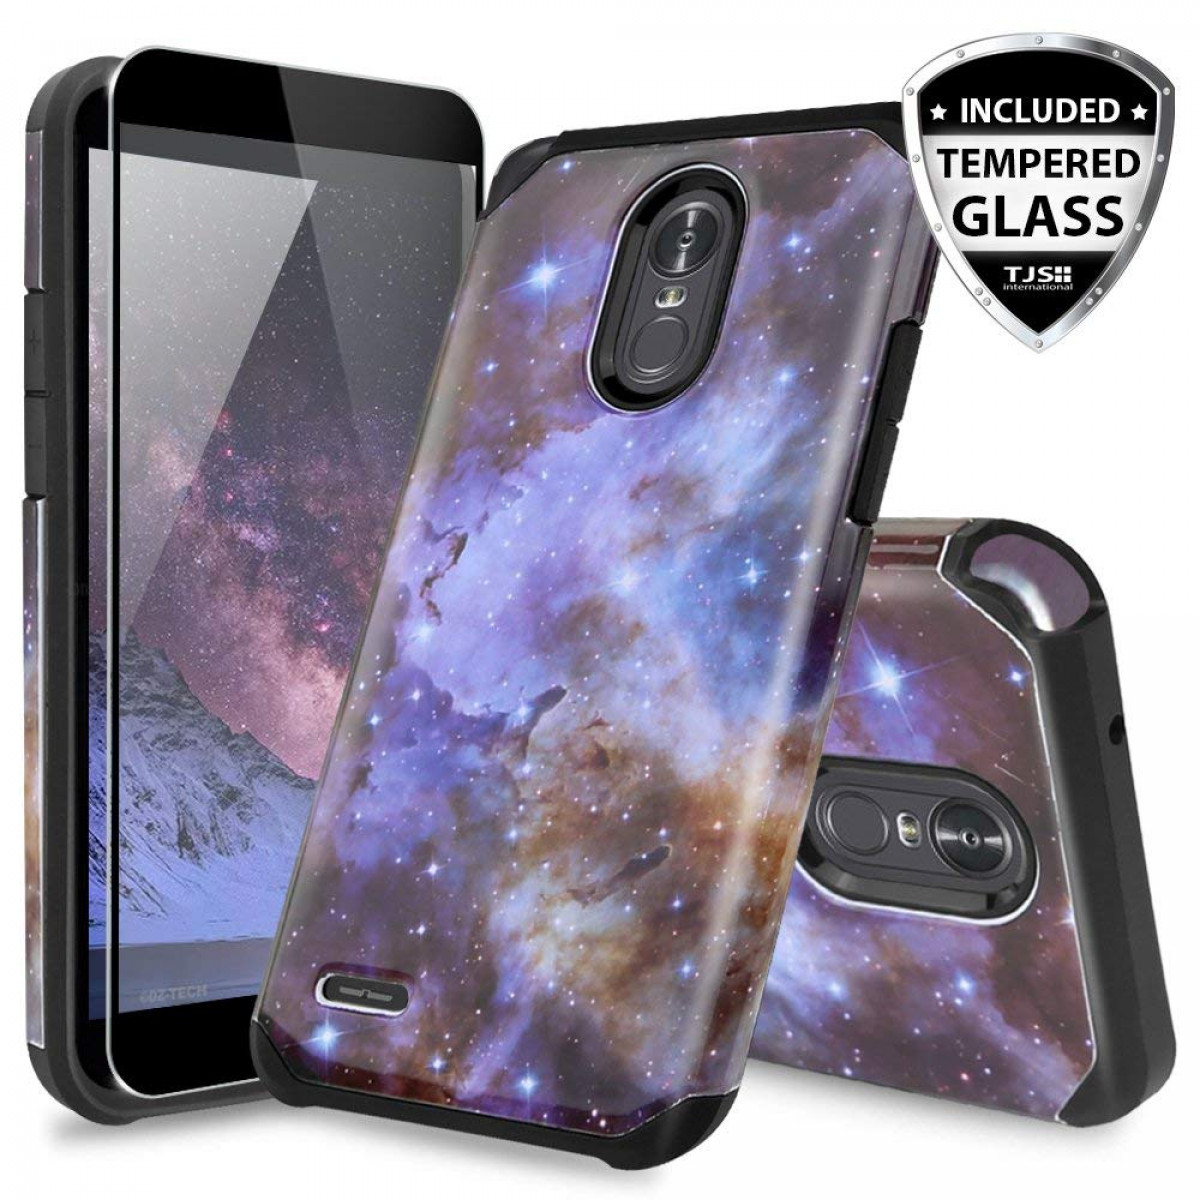 info for a5b72 bdb87 LG Stylo 3 Case, for LG Stylo 3 Plus Case, with TJS [Full Coverage Tempered  Glass Screen Protector] Ultra Thin Slim Hybrid Shockproof Drop Protection  ...